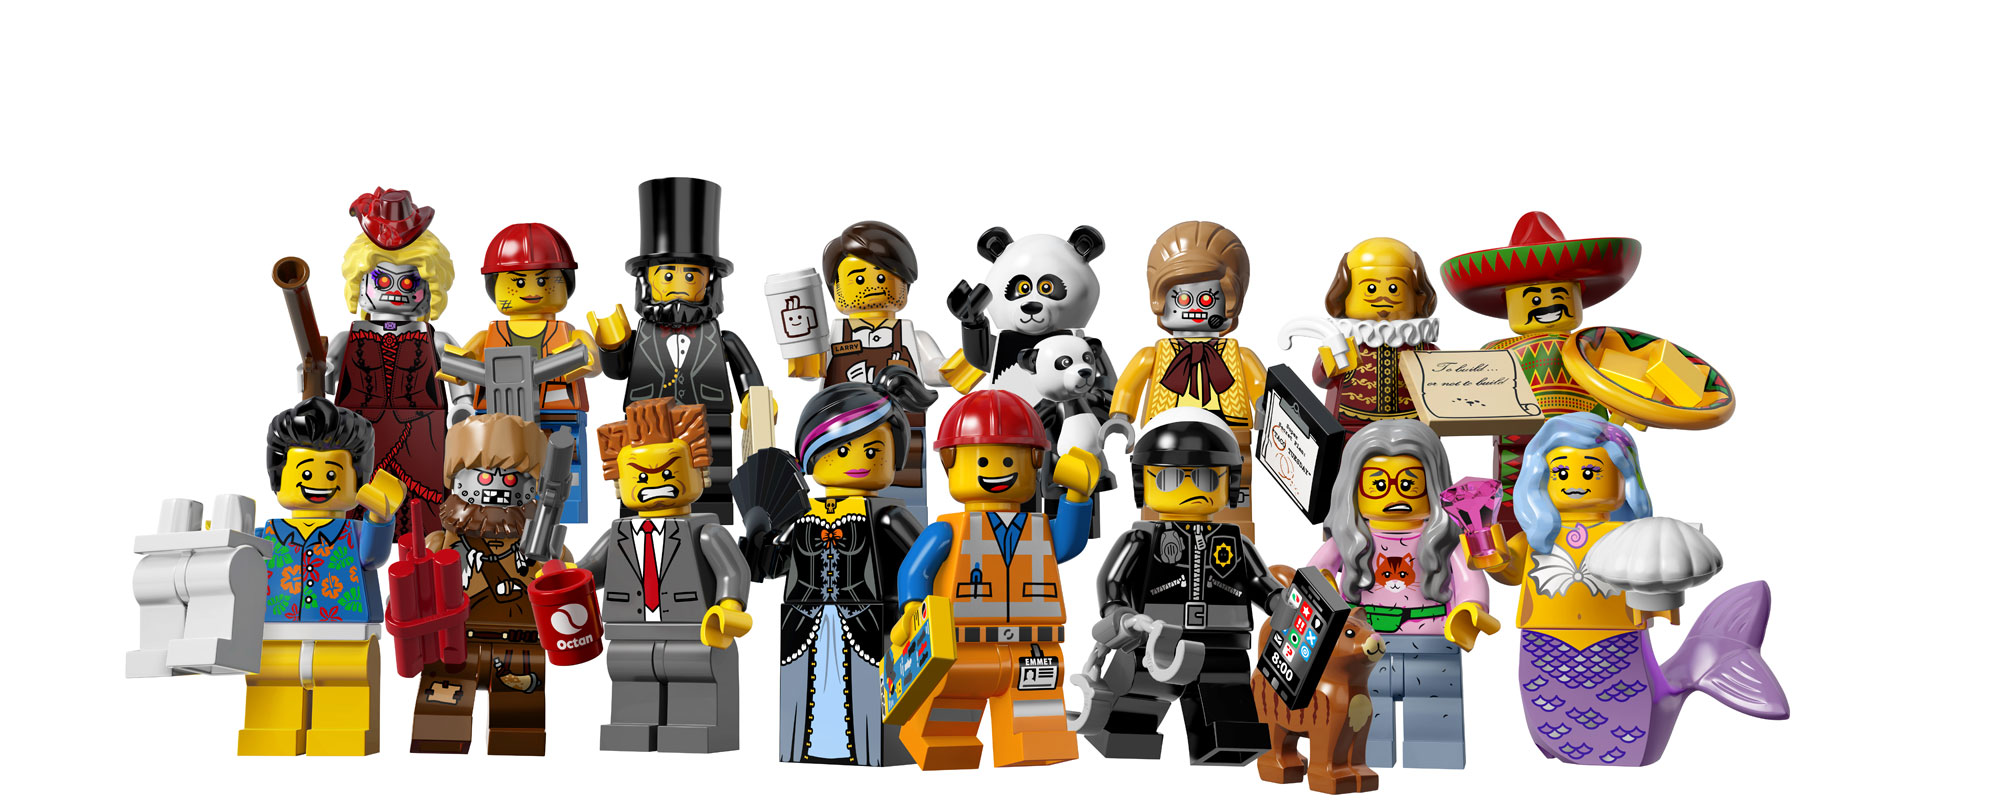 Review The Lego Movie Minifigures Part 1